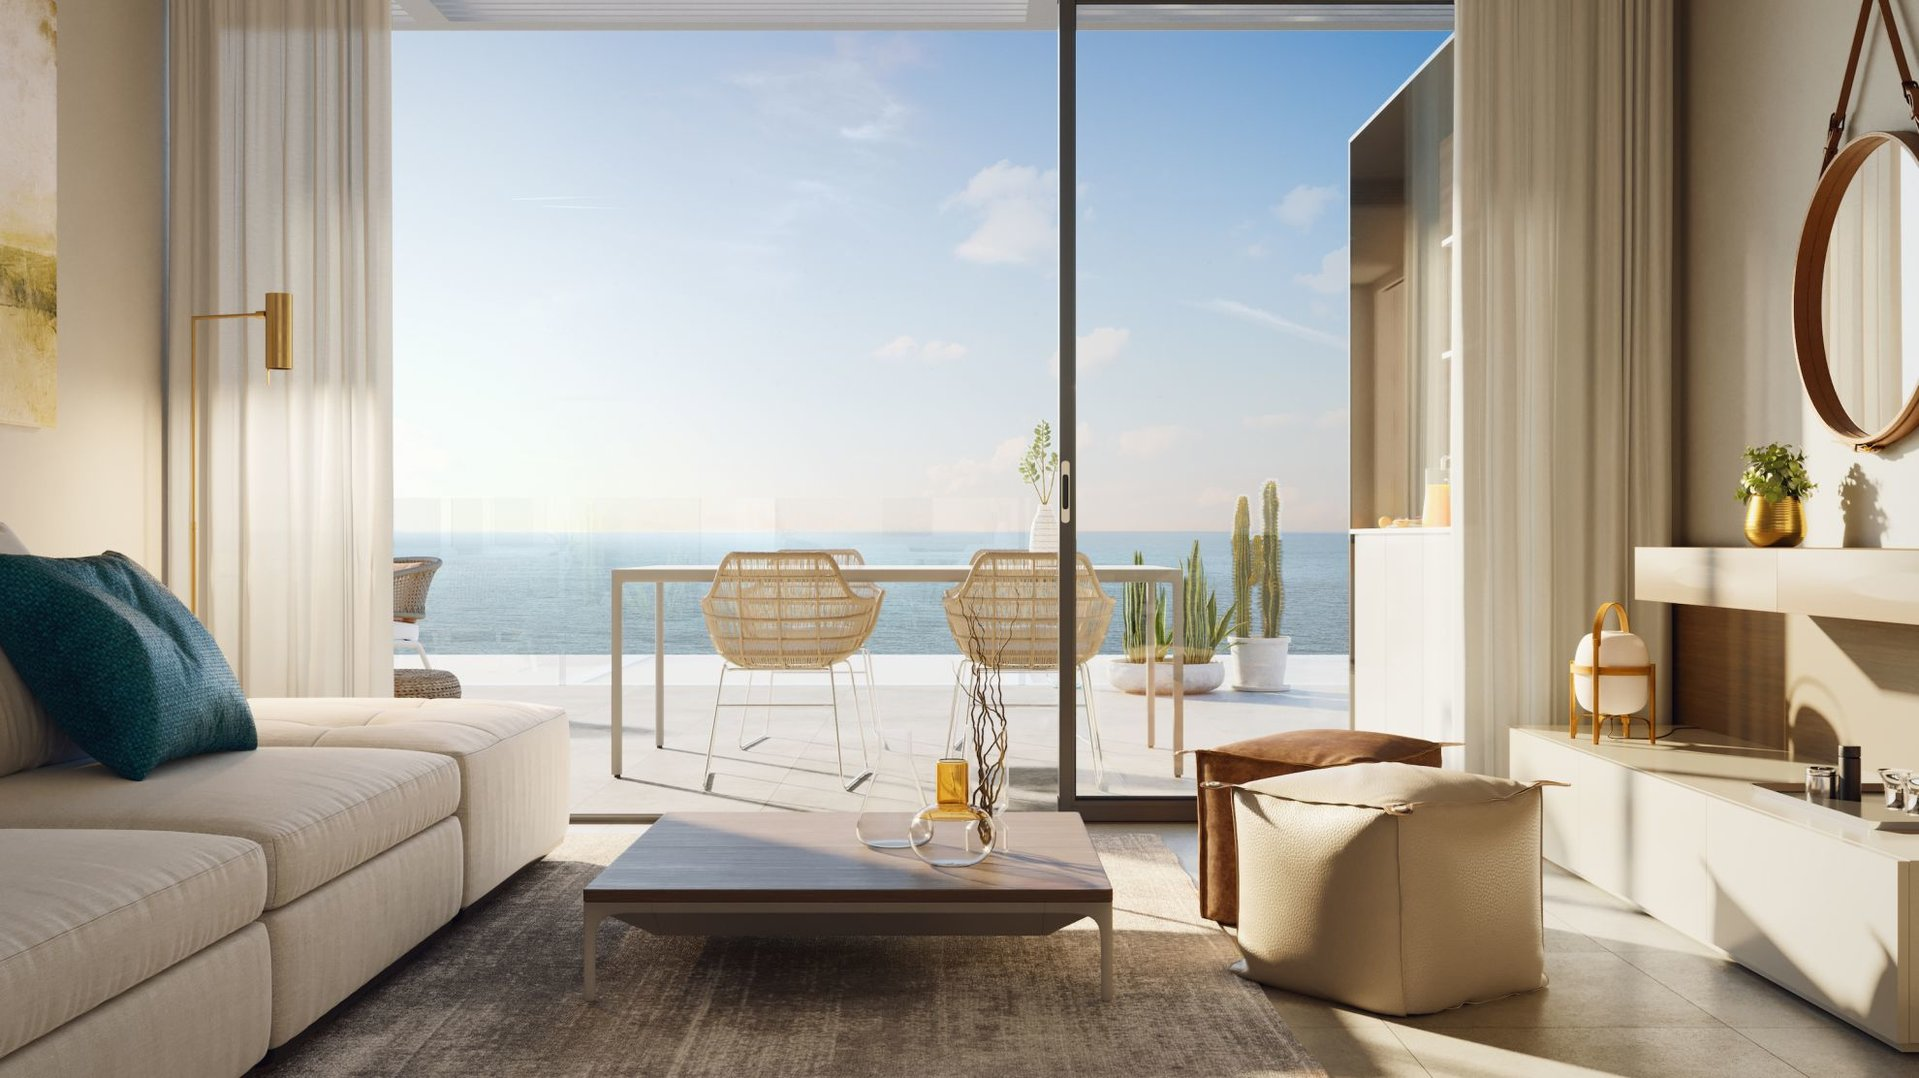 2 bedroom penthouses with sea views